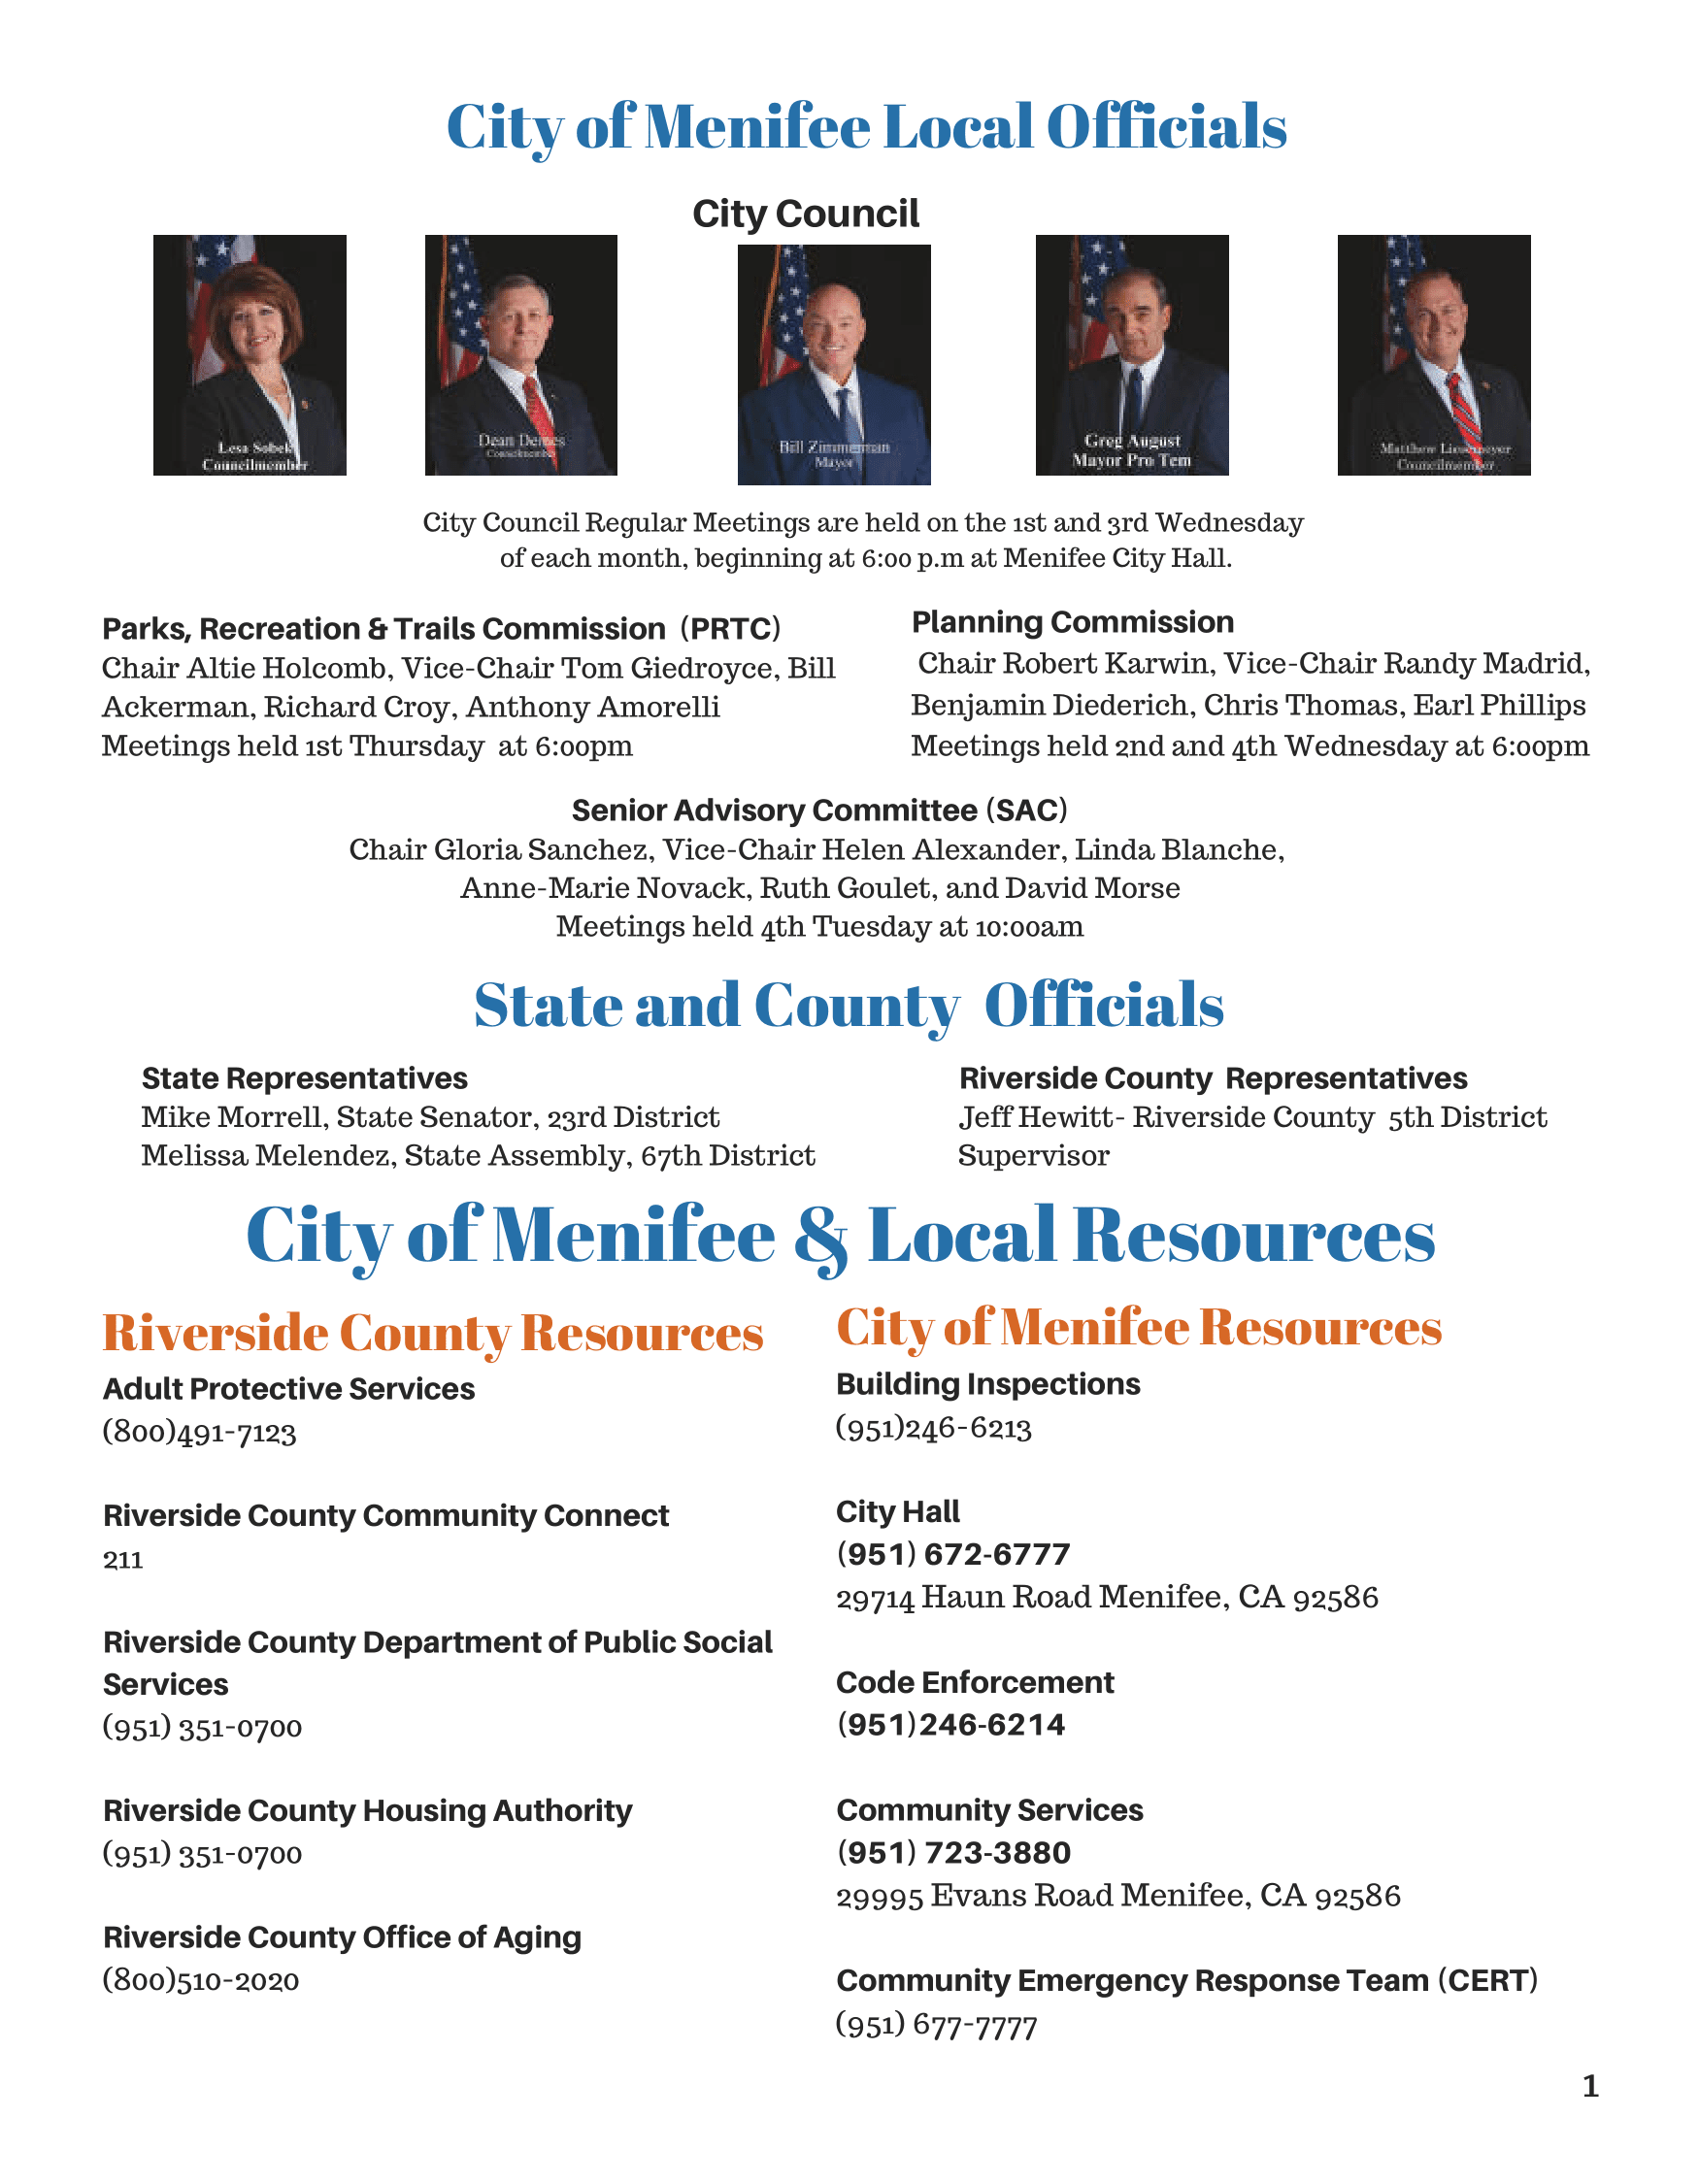 Menifee Senior Resource Directory 2020-Page 2 (City/State Officials & Local Resources)